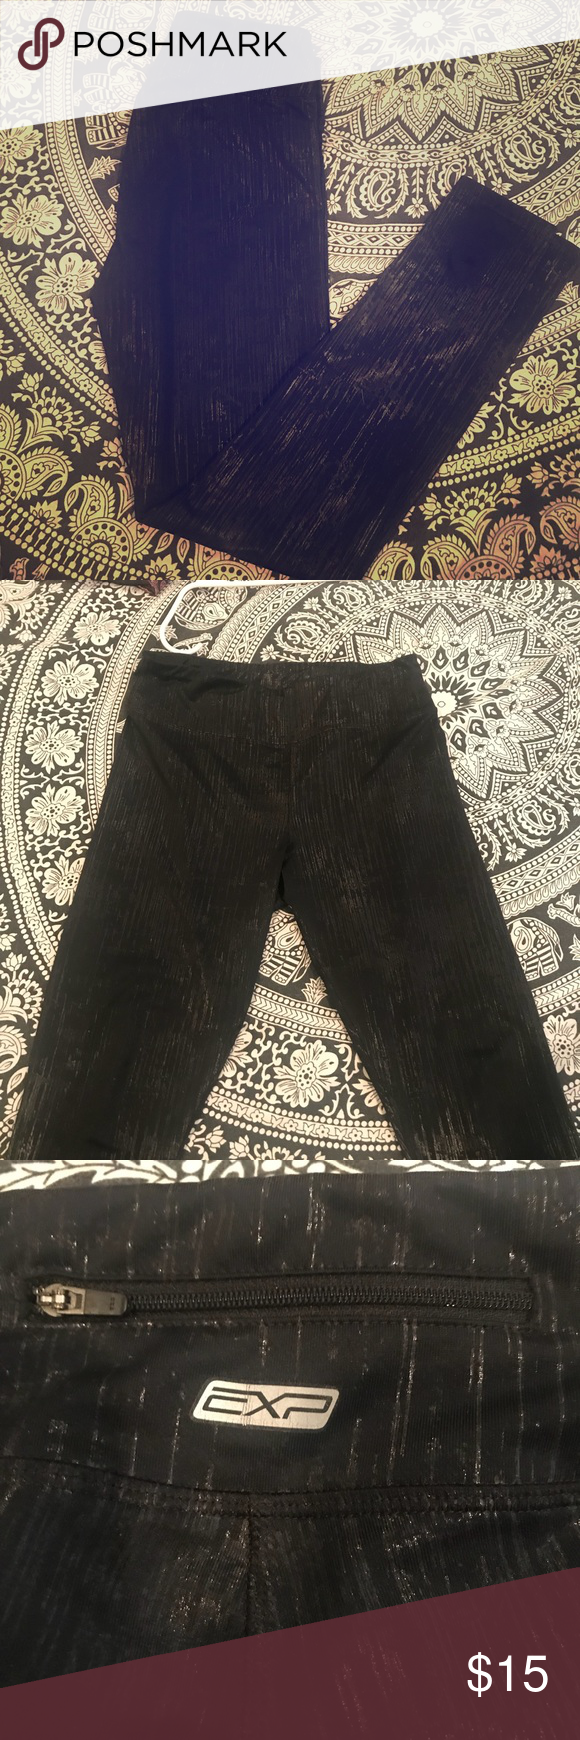 EXP (Express) Yoga 🧘♀️Active 🏃🏽♀️ Leggings Size: M/L (I'm a size 8/10 and they fit perfect). No rips or seam tears. Features black metallic detail. Check out my closet and bundle to save! Express Pants Leggings